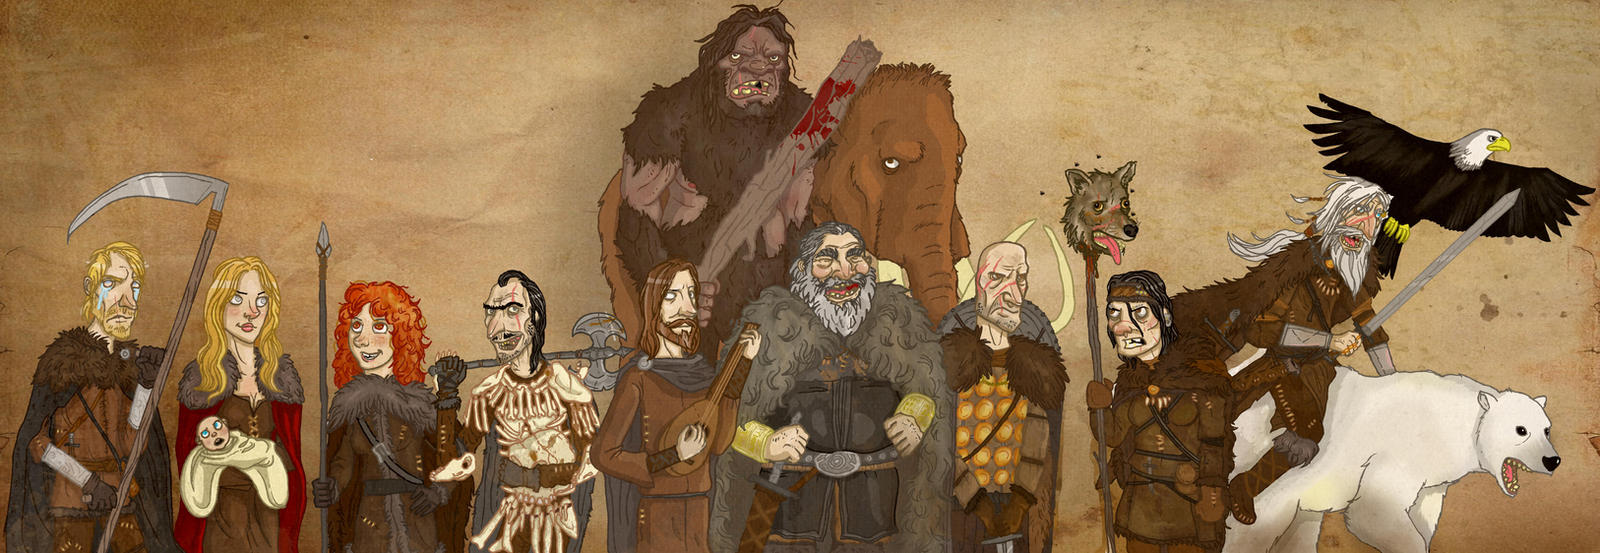 The King Beyond the Wall by Monkey19934